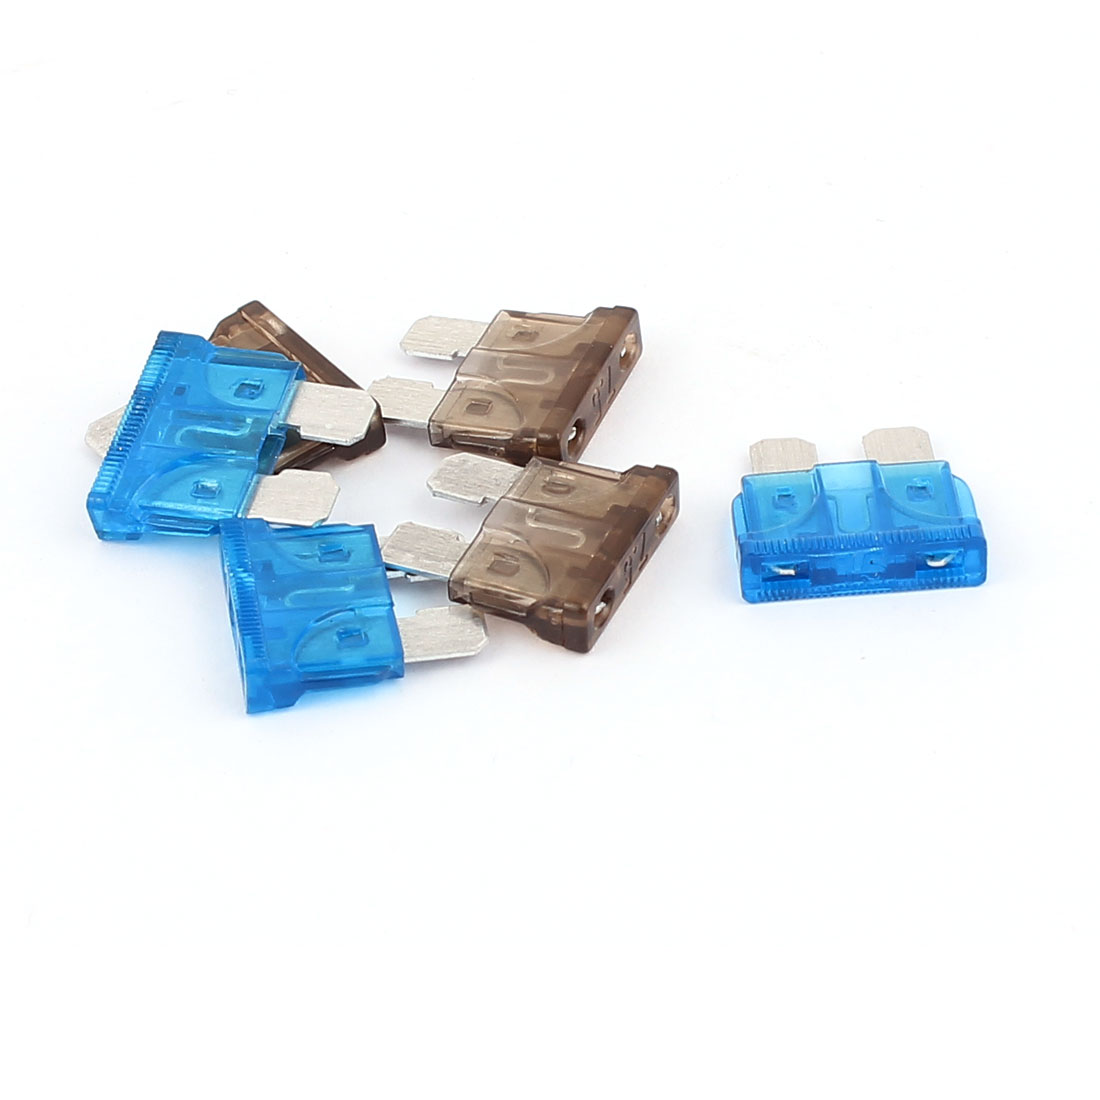 6pcs Blue Gray 15A 7.5A Plastic Casing ATC ATO Mini Blade Fuses for Car Caravan Truck Auto